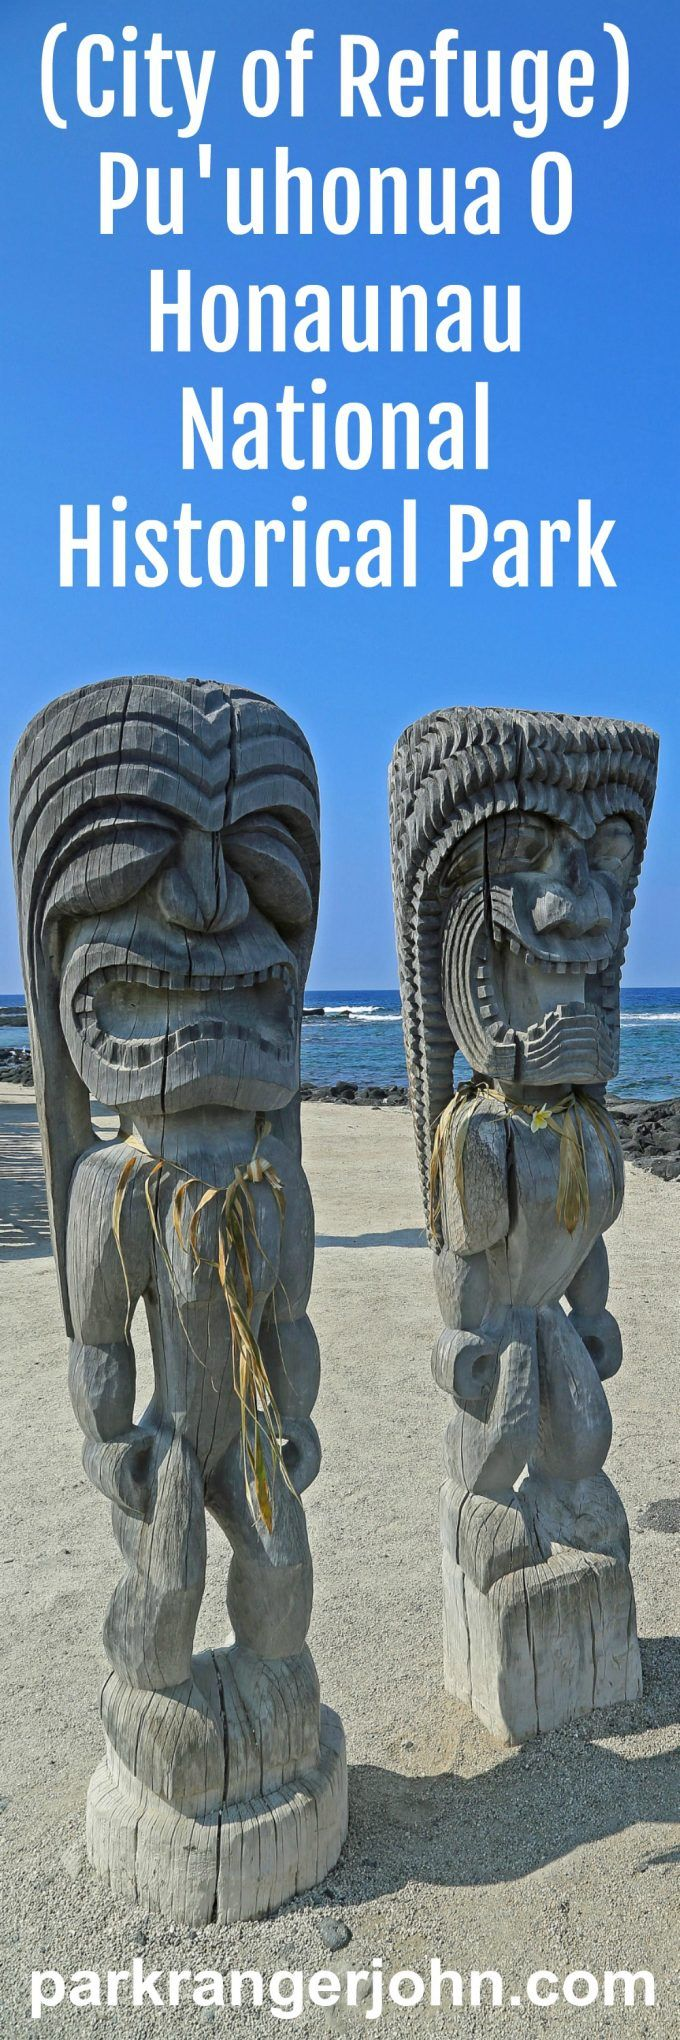 Pu'uhonua O Honaunau, also known as The City of Refuge Hawaii is a National Historic Park. THis is a sacred place for Hawaiians and takes you into the culture of Hawaii